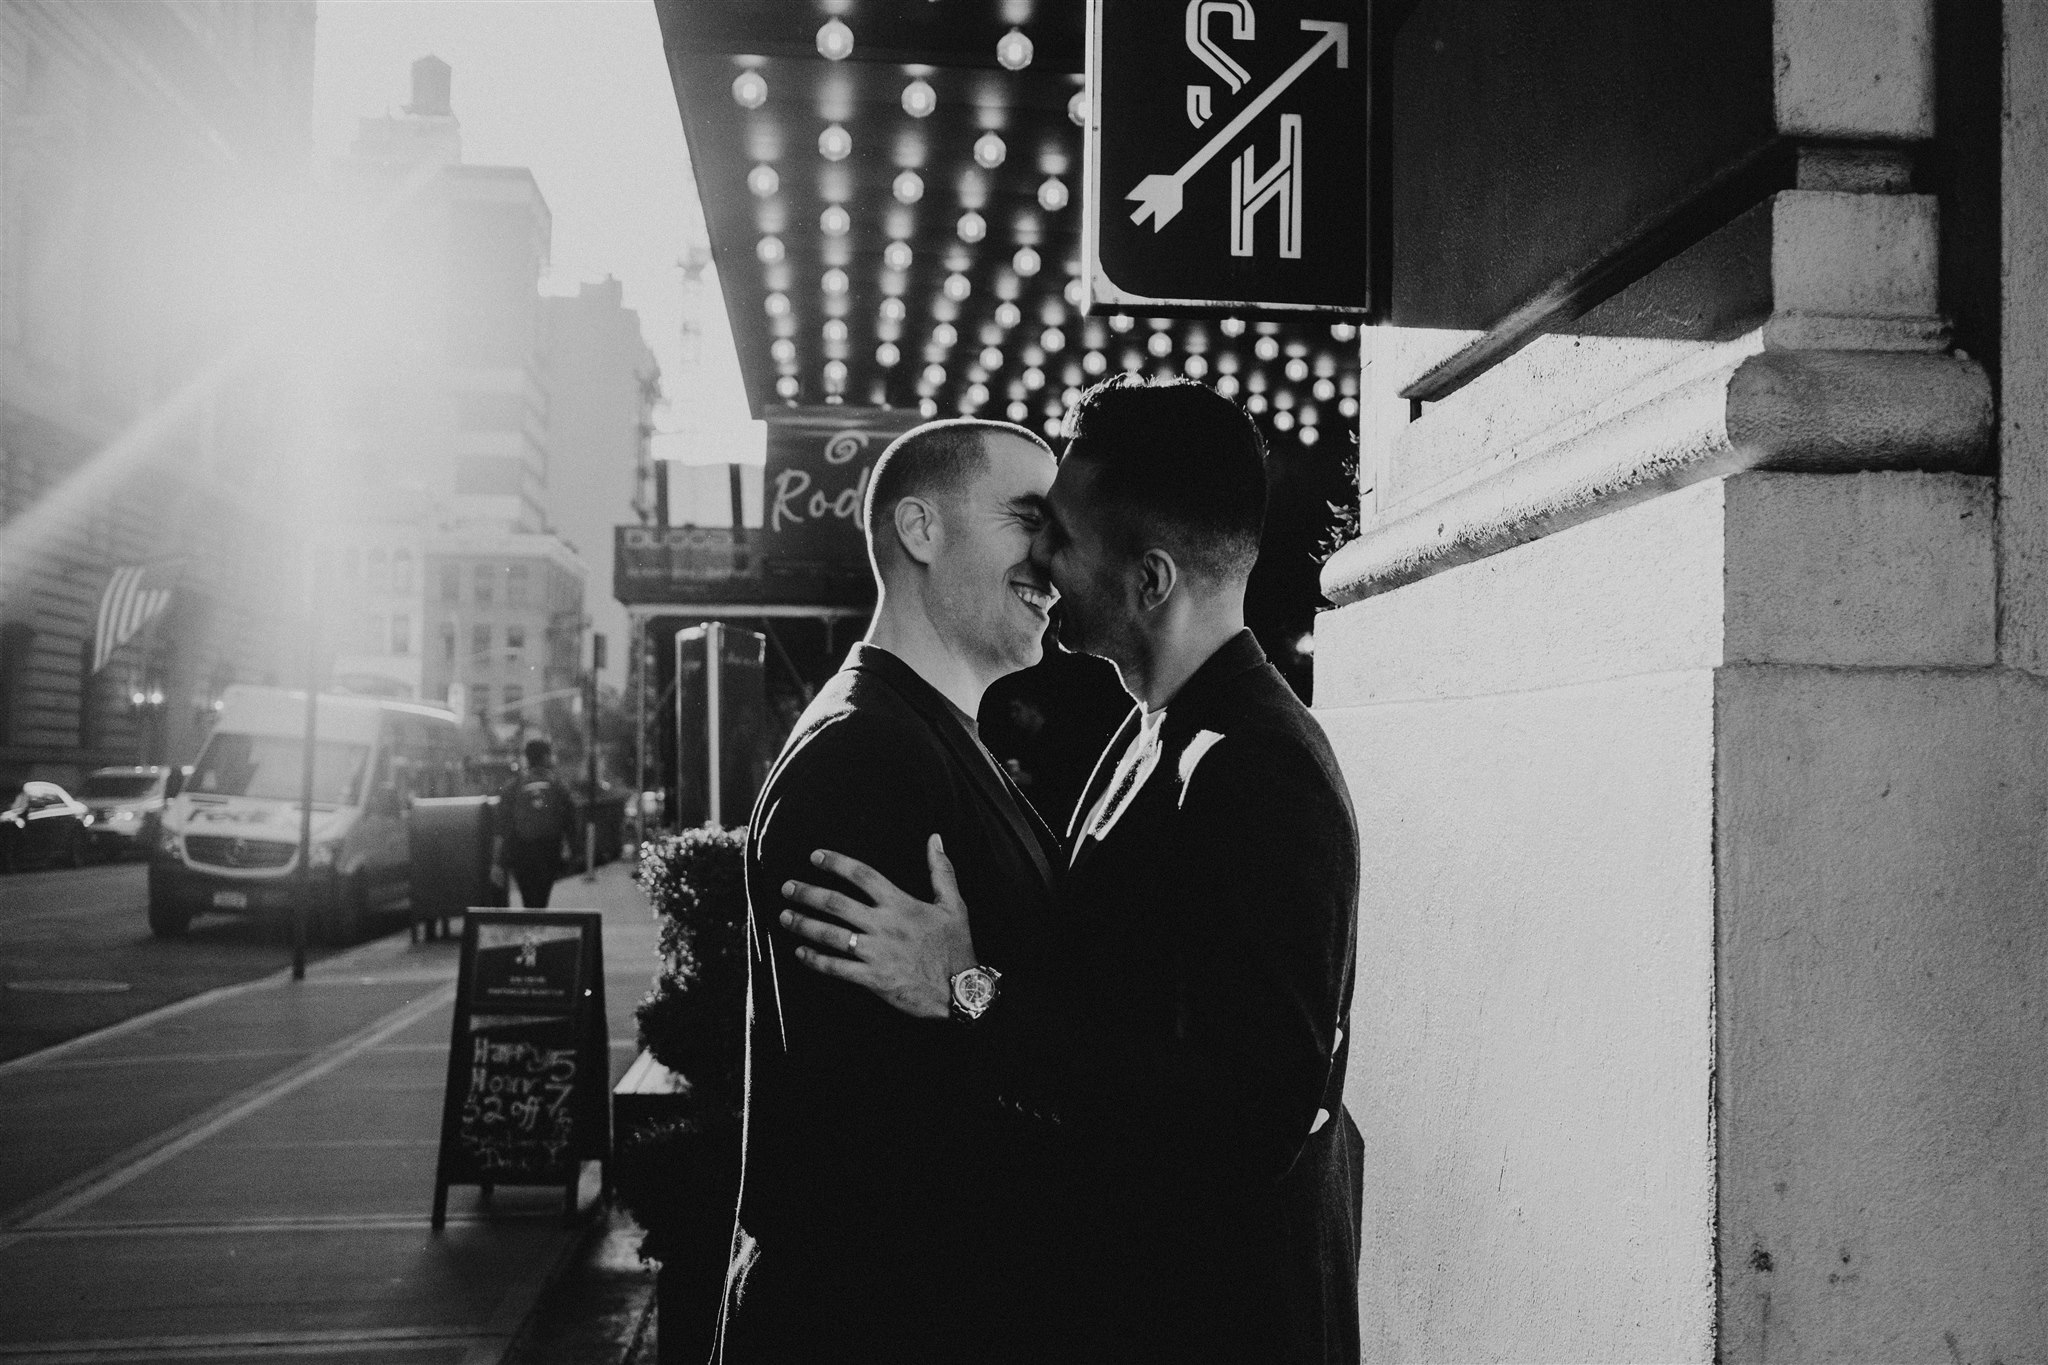 lbgtq-gay-wedding-elopement-photography-chellise-michael-photography286.JPG